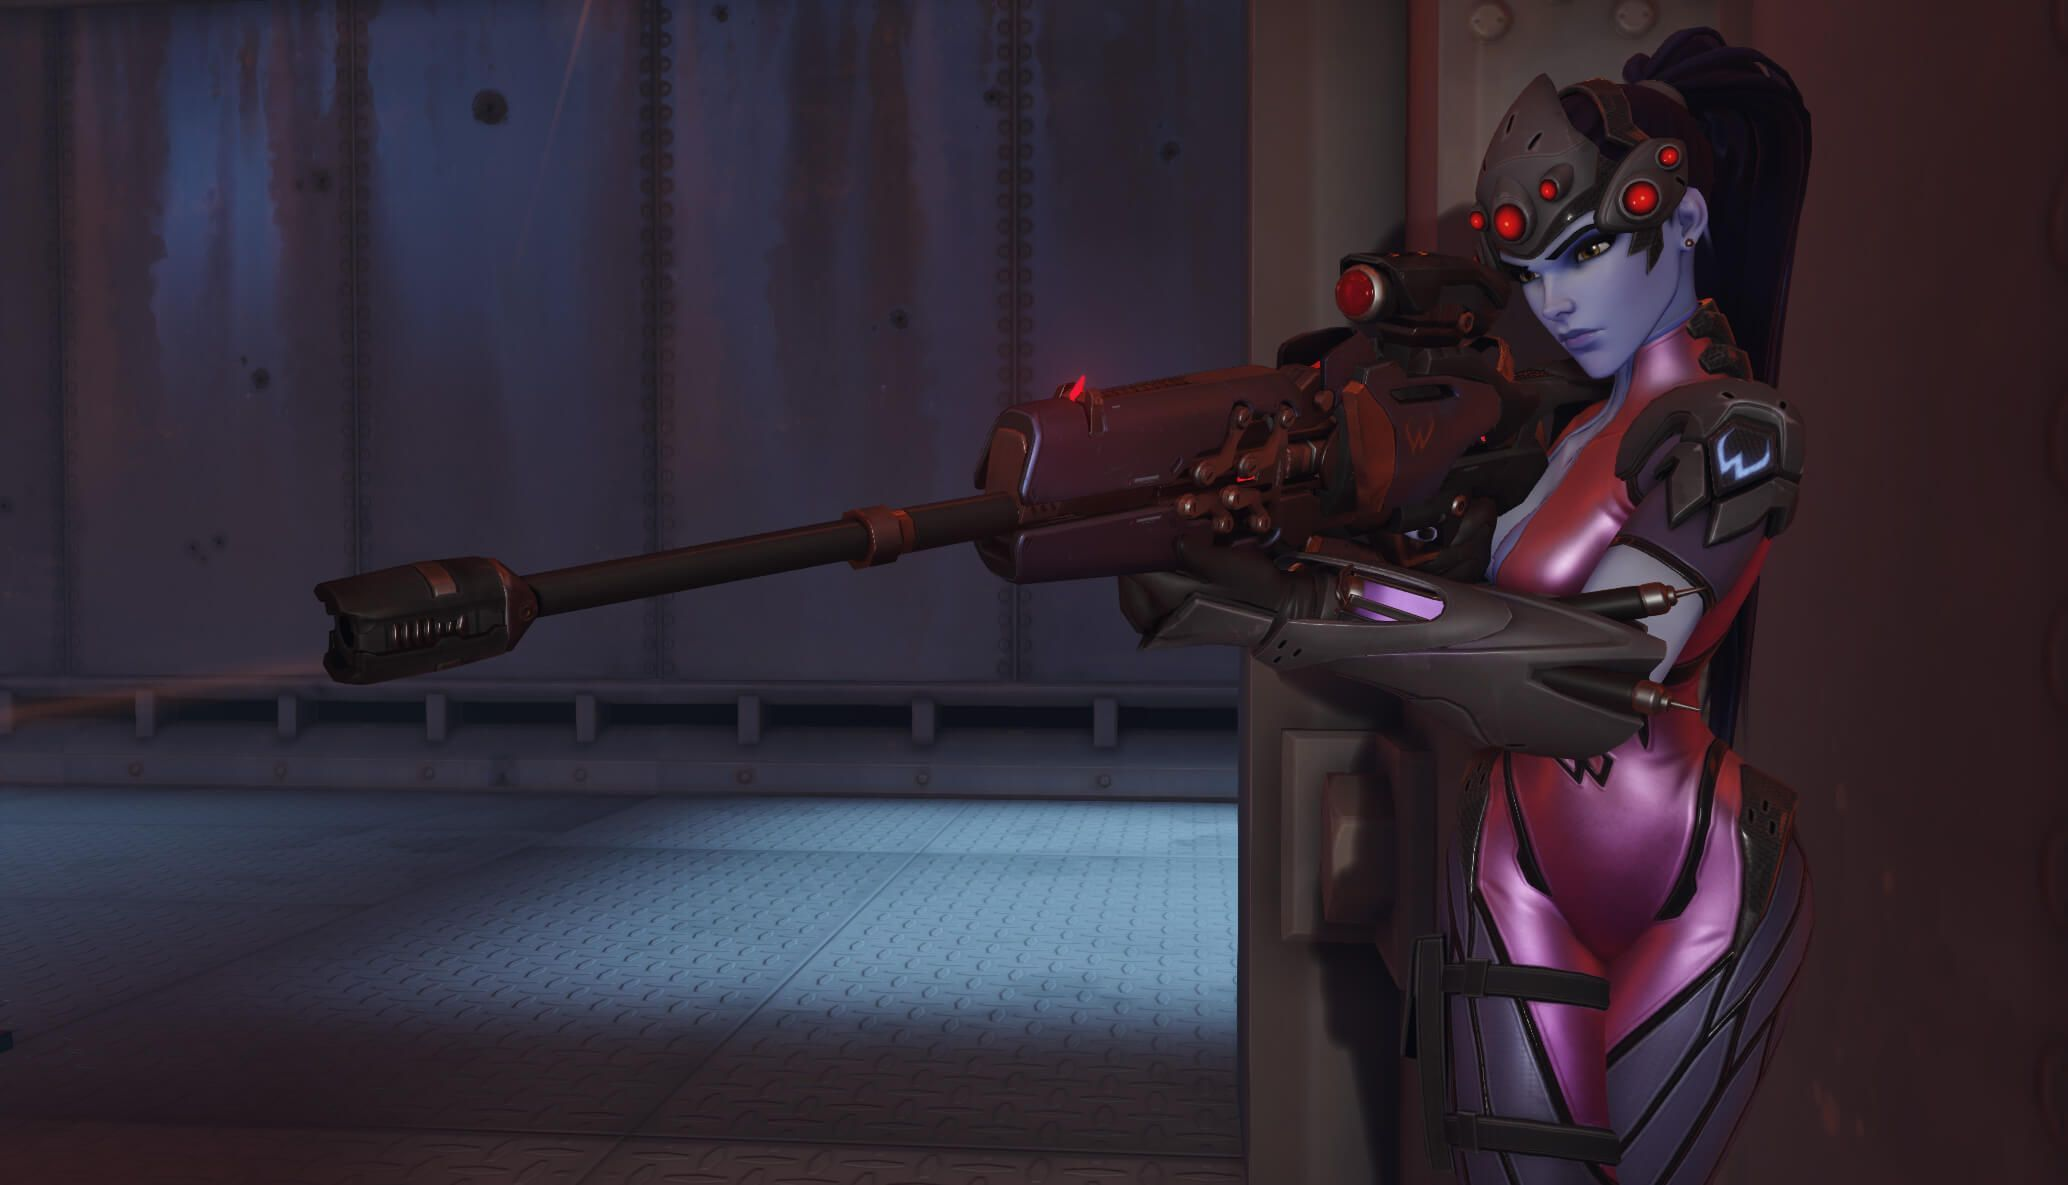 Overwatch : Widowmaker Desktop wallpapers